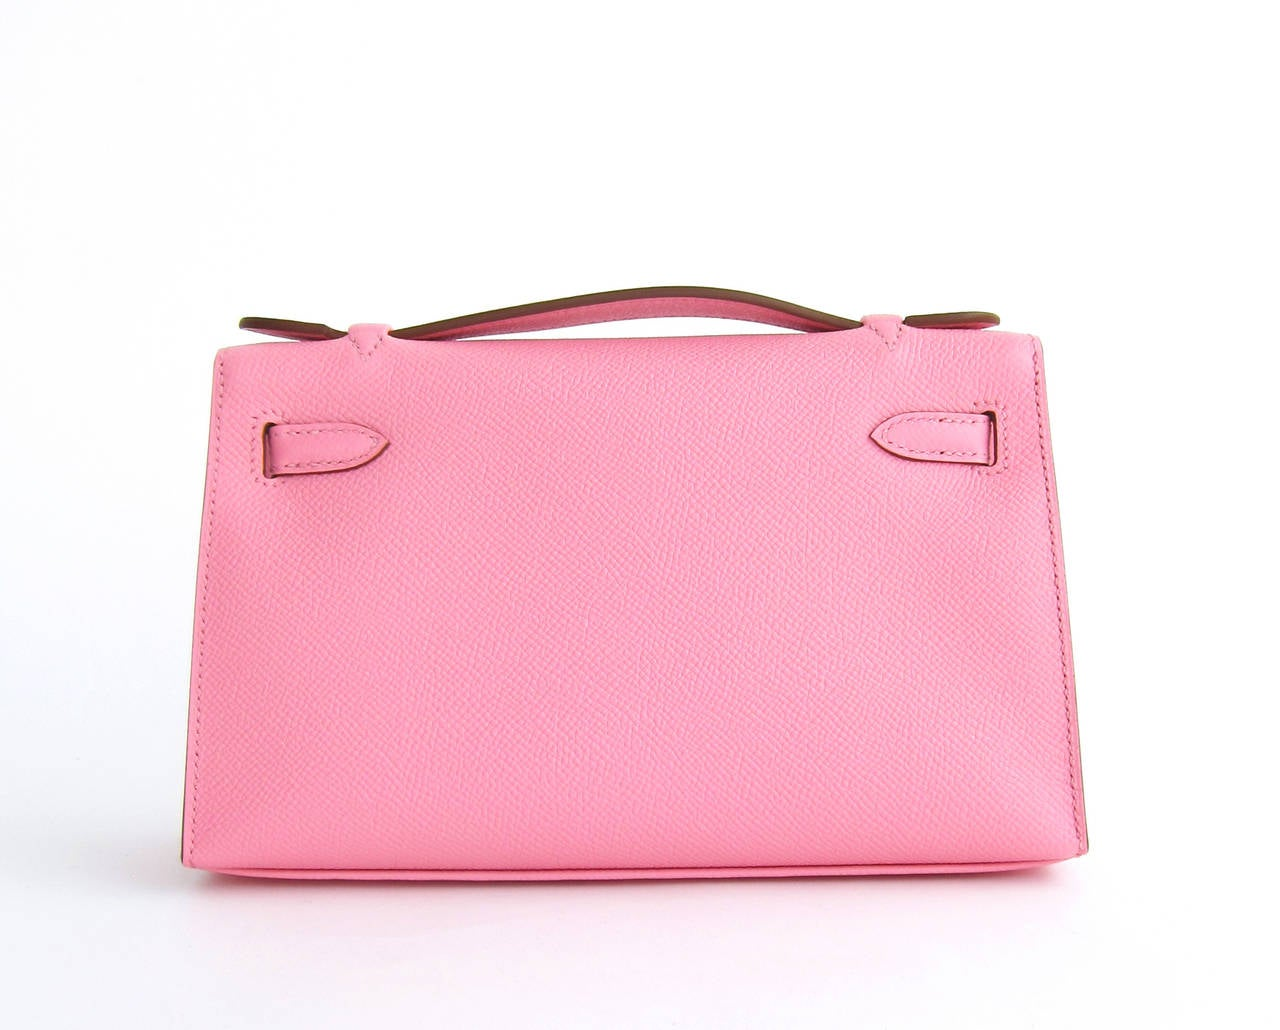 Hermes Rose Confetti Epsom Kelly Pochette Pink Clutch Bag Love In New Never_worn Condition For Sale In New York, NY